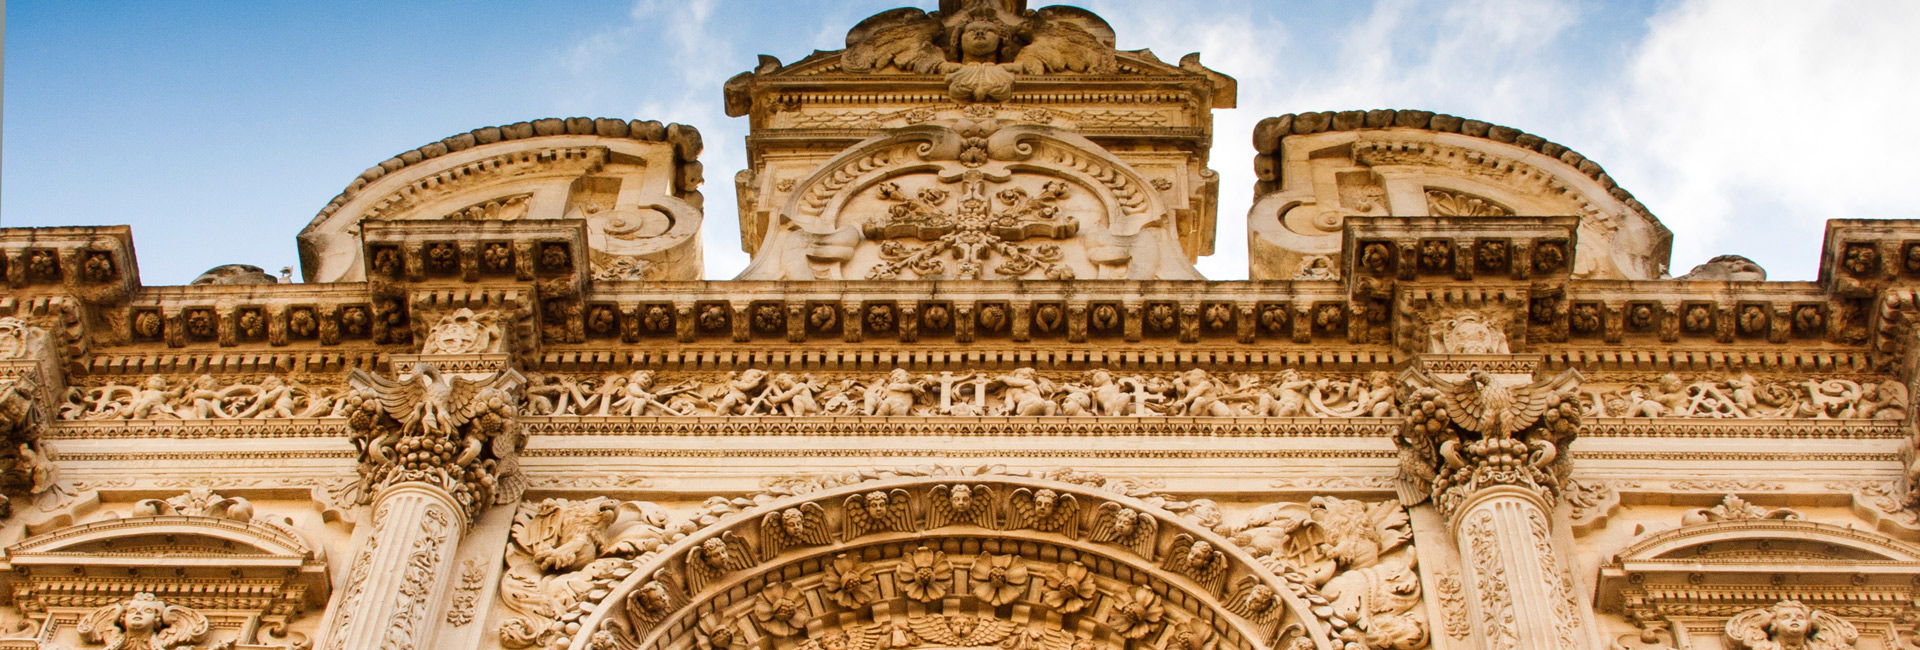 Lecce_iStock_000044409686_Large